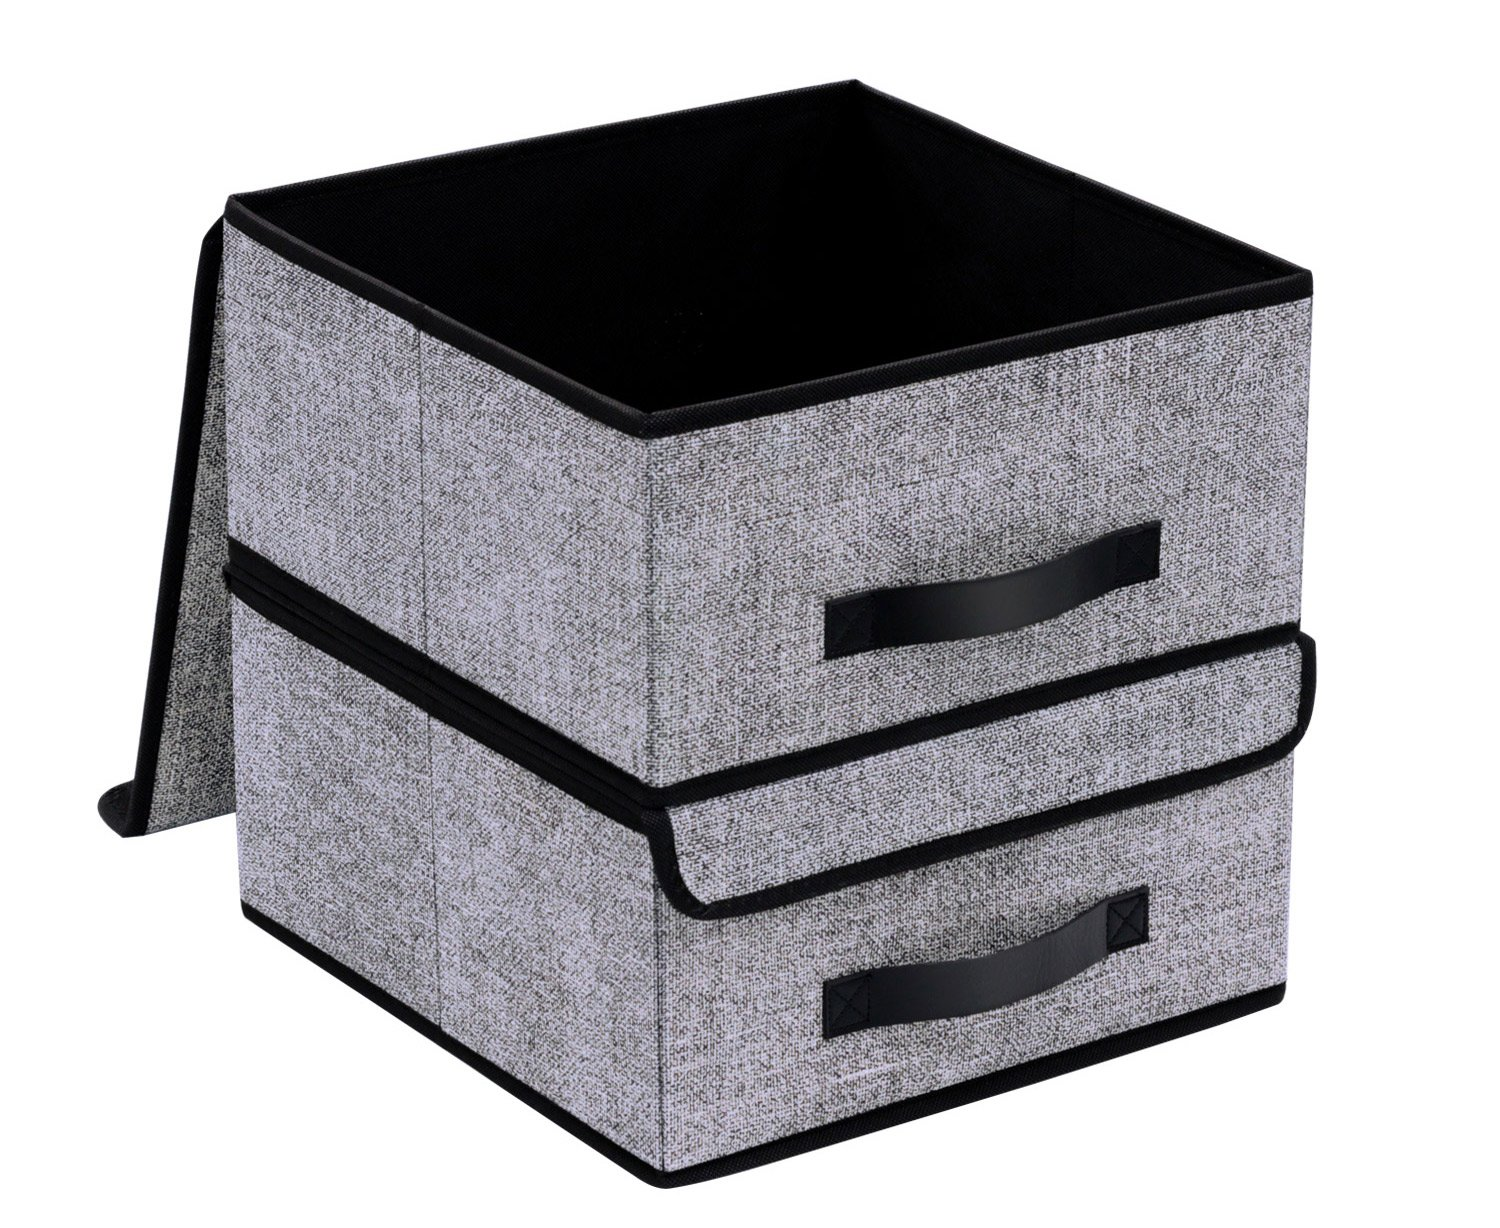 Onlyeasy Foldable Storage Bins Cubes Boxes with Lid - Storage Box Cube Basket Closet Organizer Pack of Two with Leather Handles for Closet Bedroom, 13''x13'', Black, 8MXALB2P